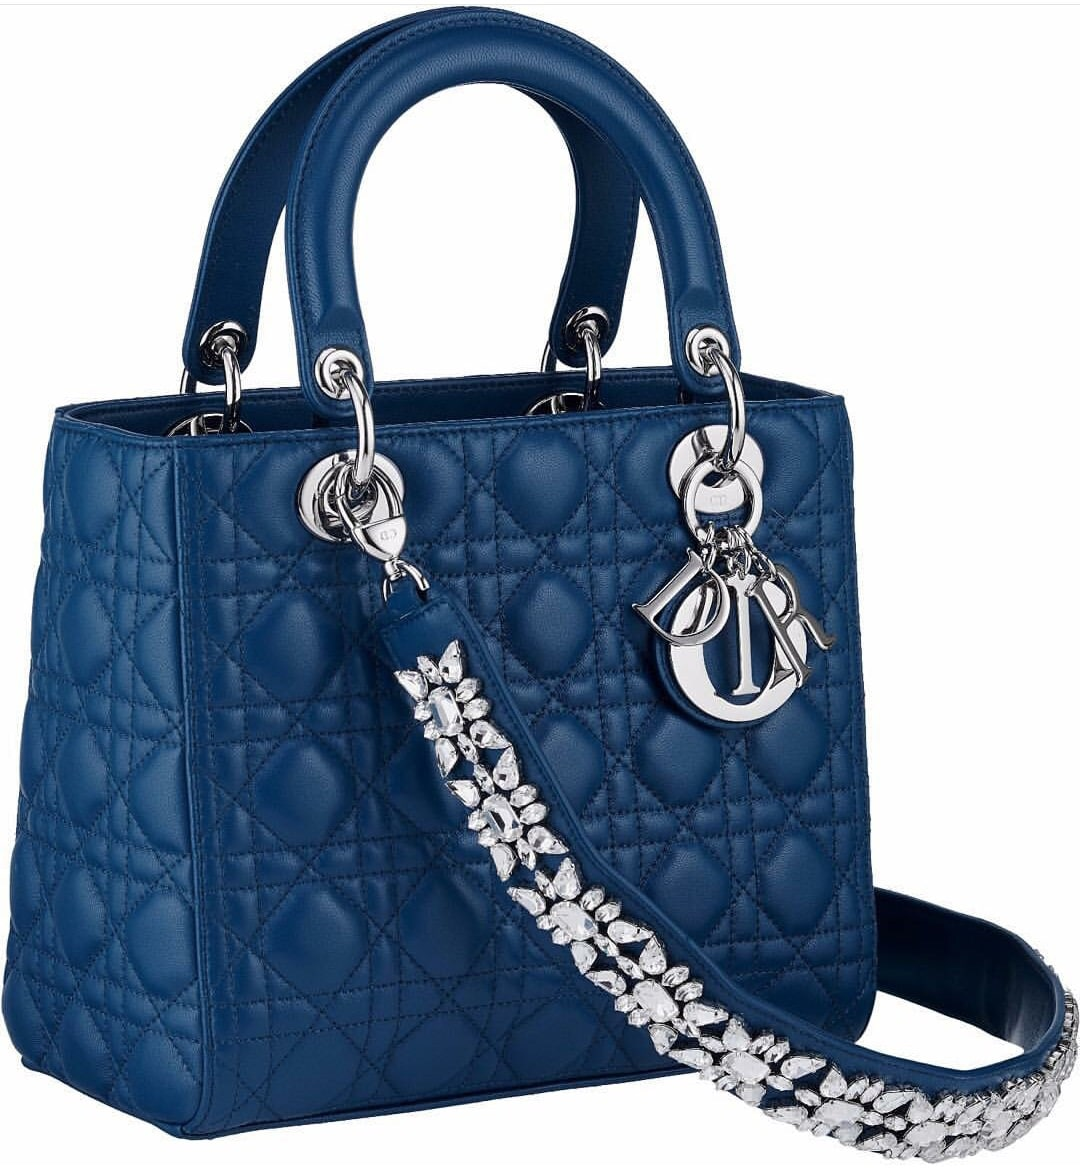 b8656f417e5 Dior Spring/Summer 2016 Bag Collection | Page 2 of 2 | Spotted Fashion